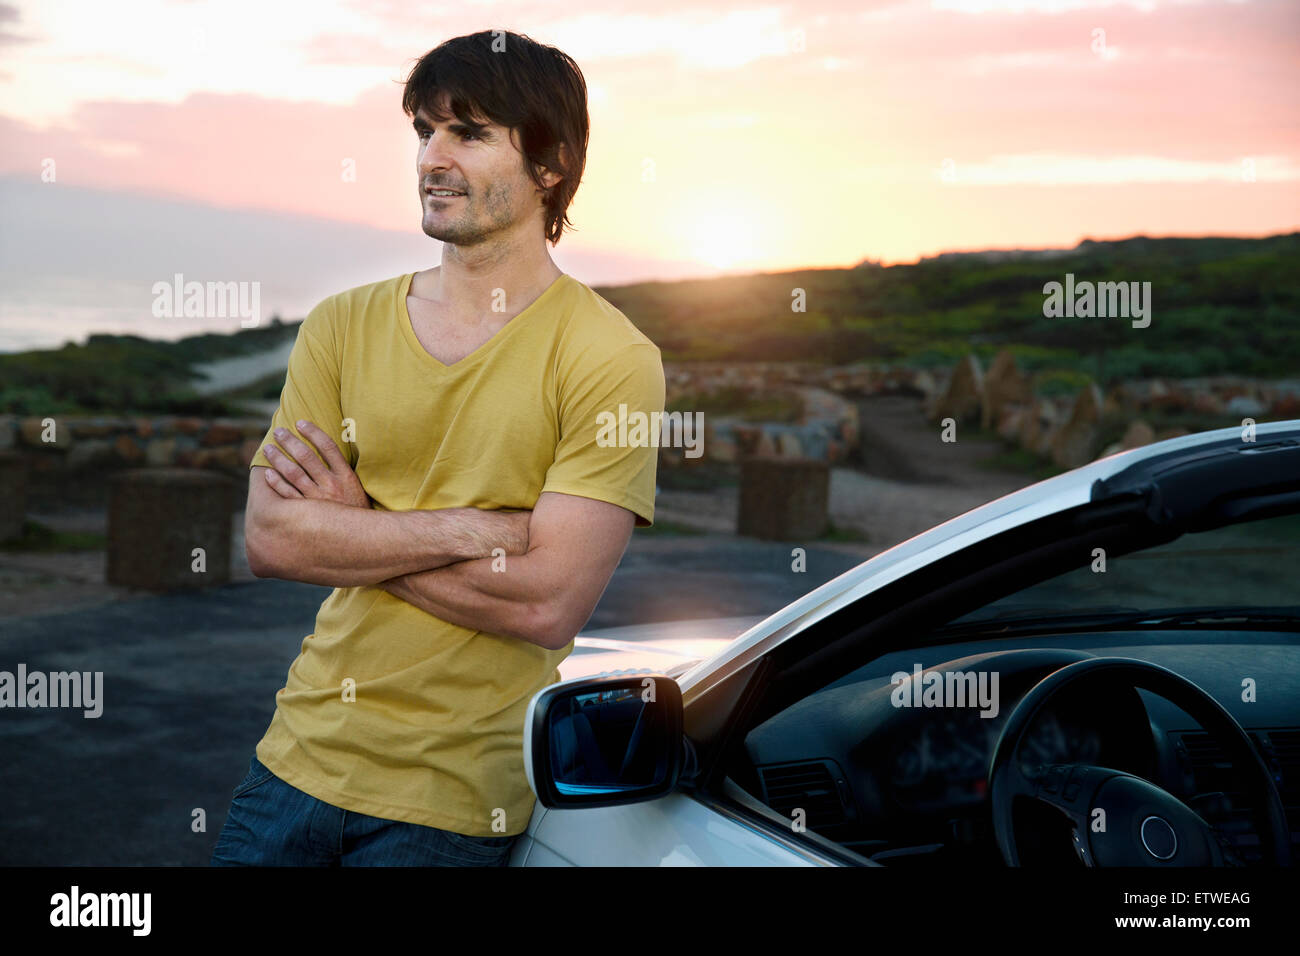 South Africa, smiling man at parked car at sunrise - Stock Image